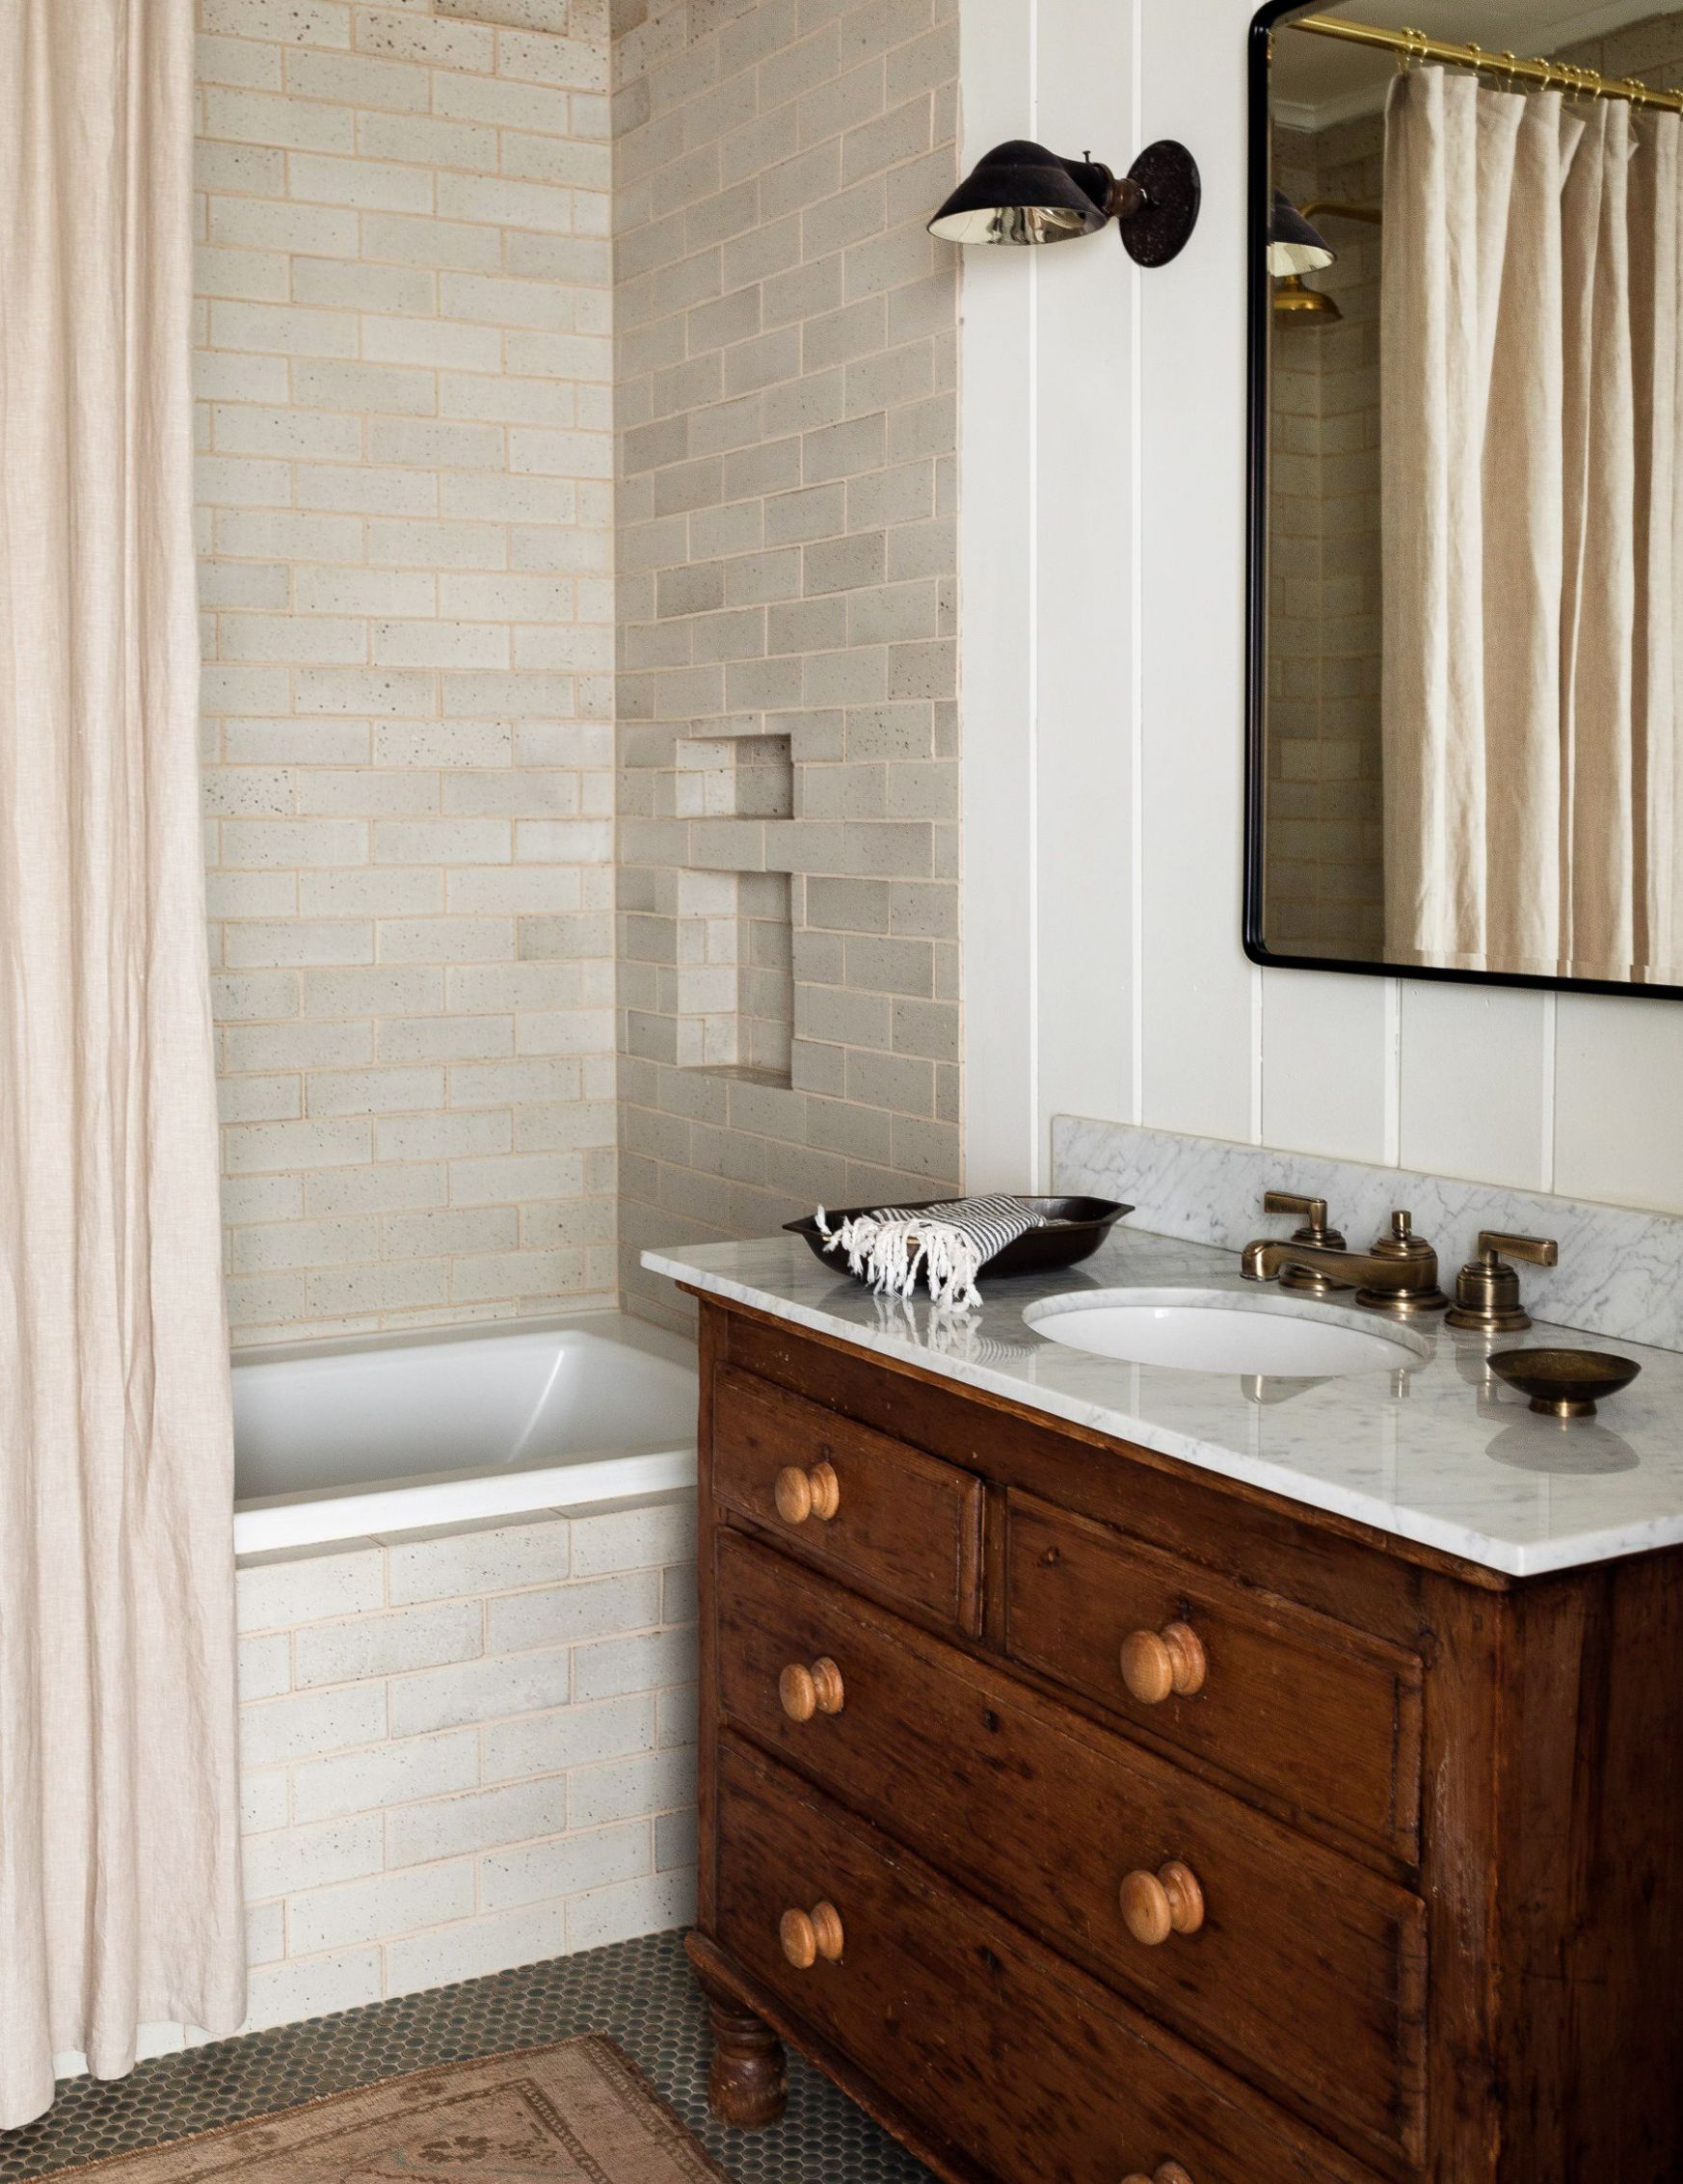 10 Best Subway Tile Bathroom Designs in 10 - Subway Tile Ideas ..